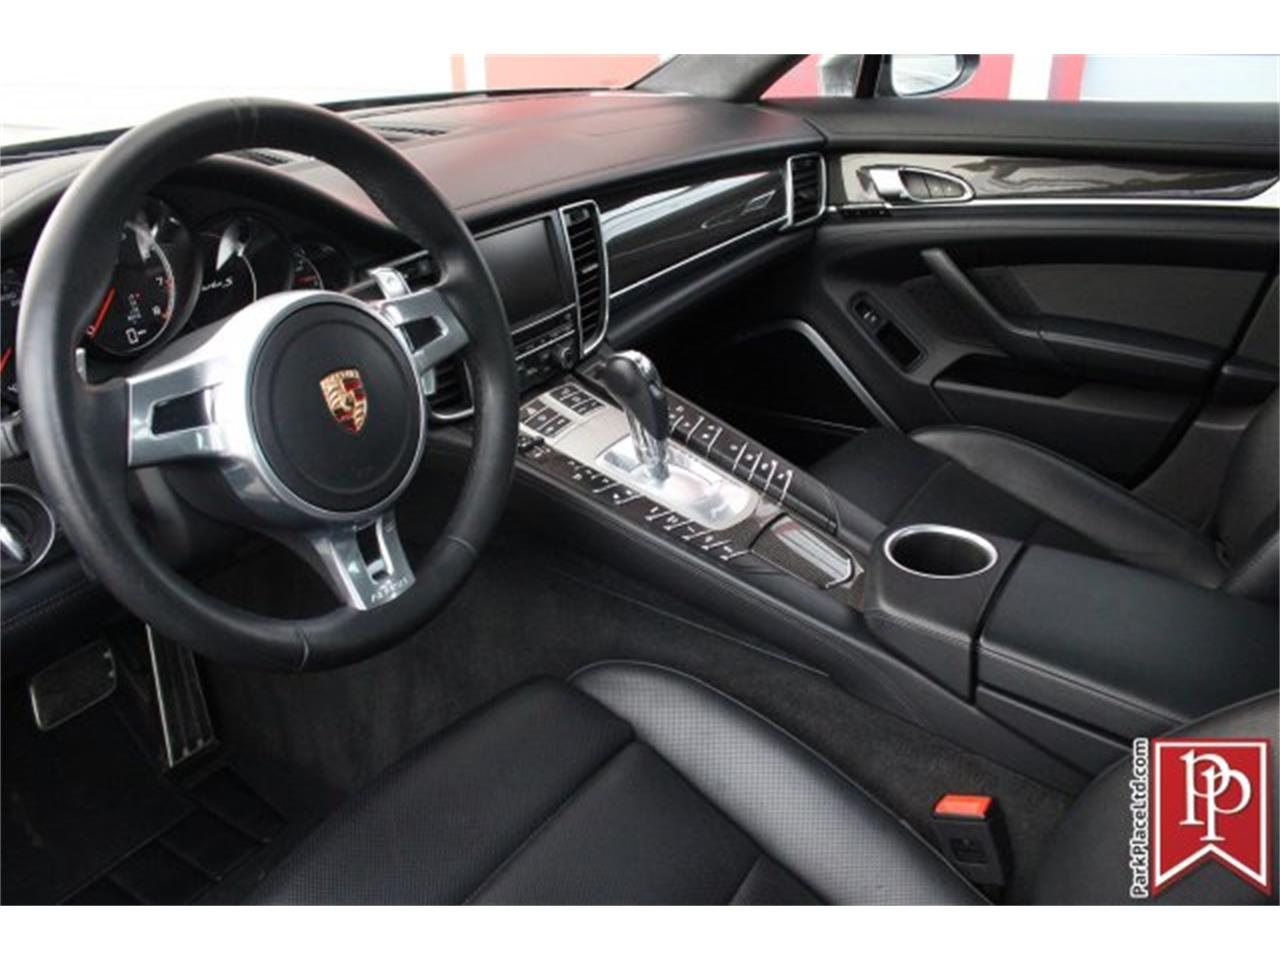 2014 Porsche Panamera for sale in Bellevue, WA – photo 9